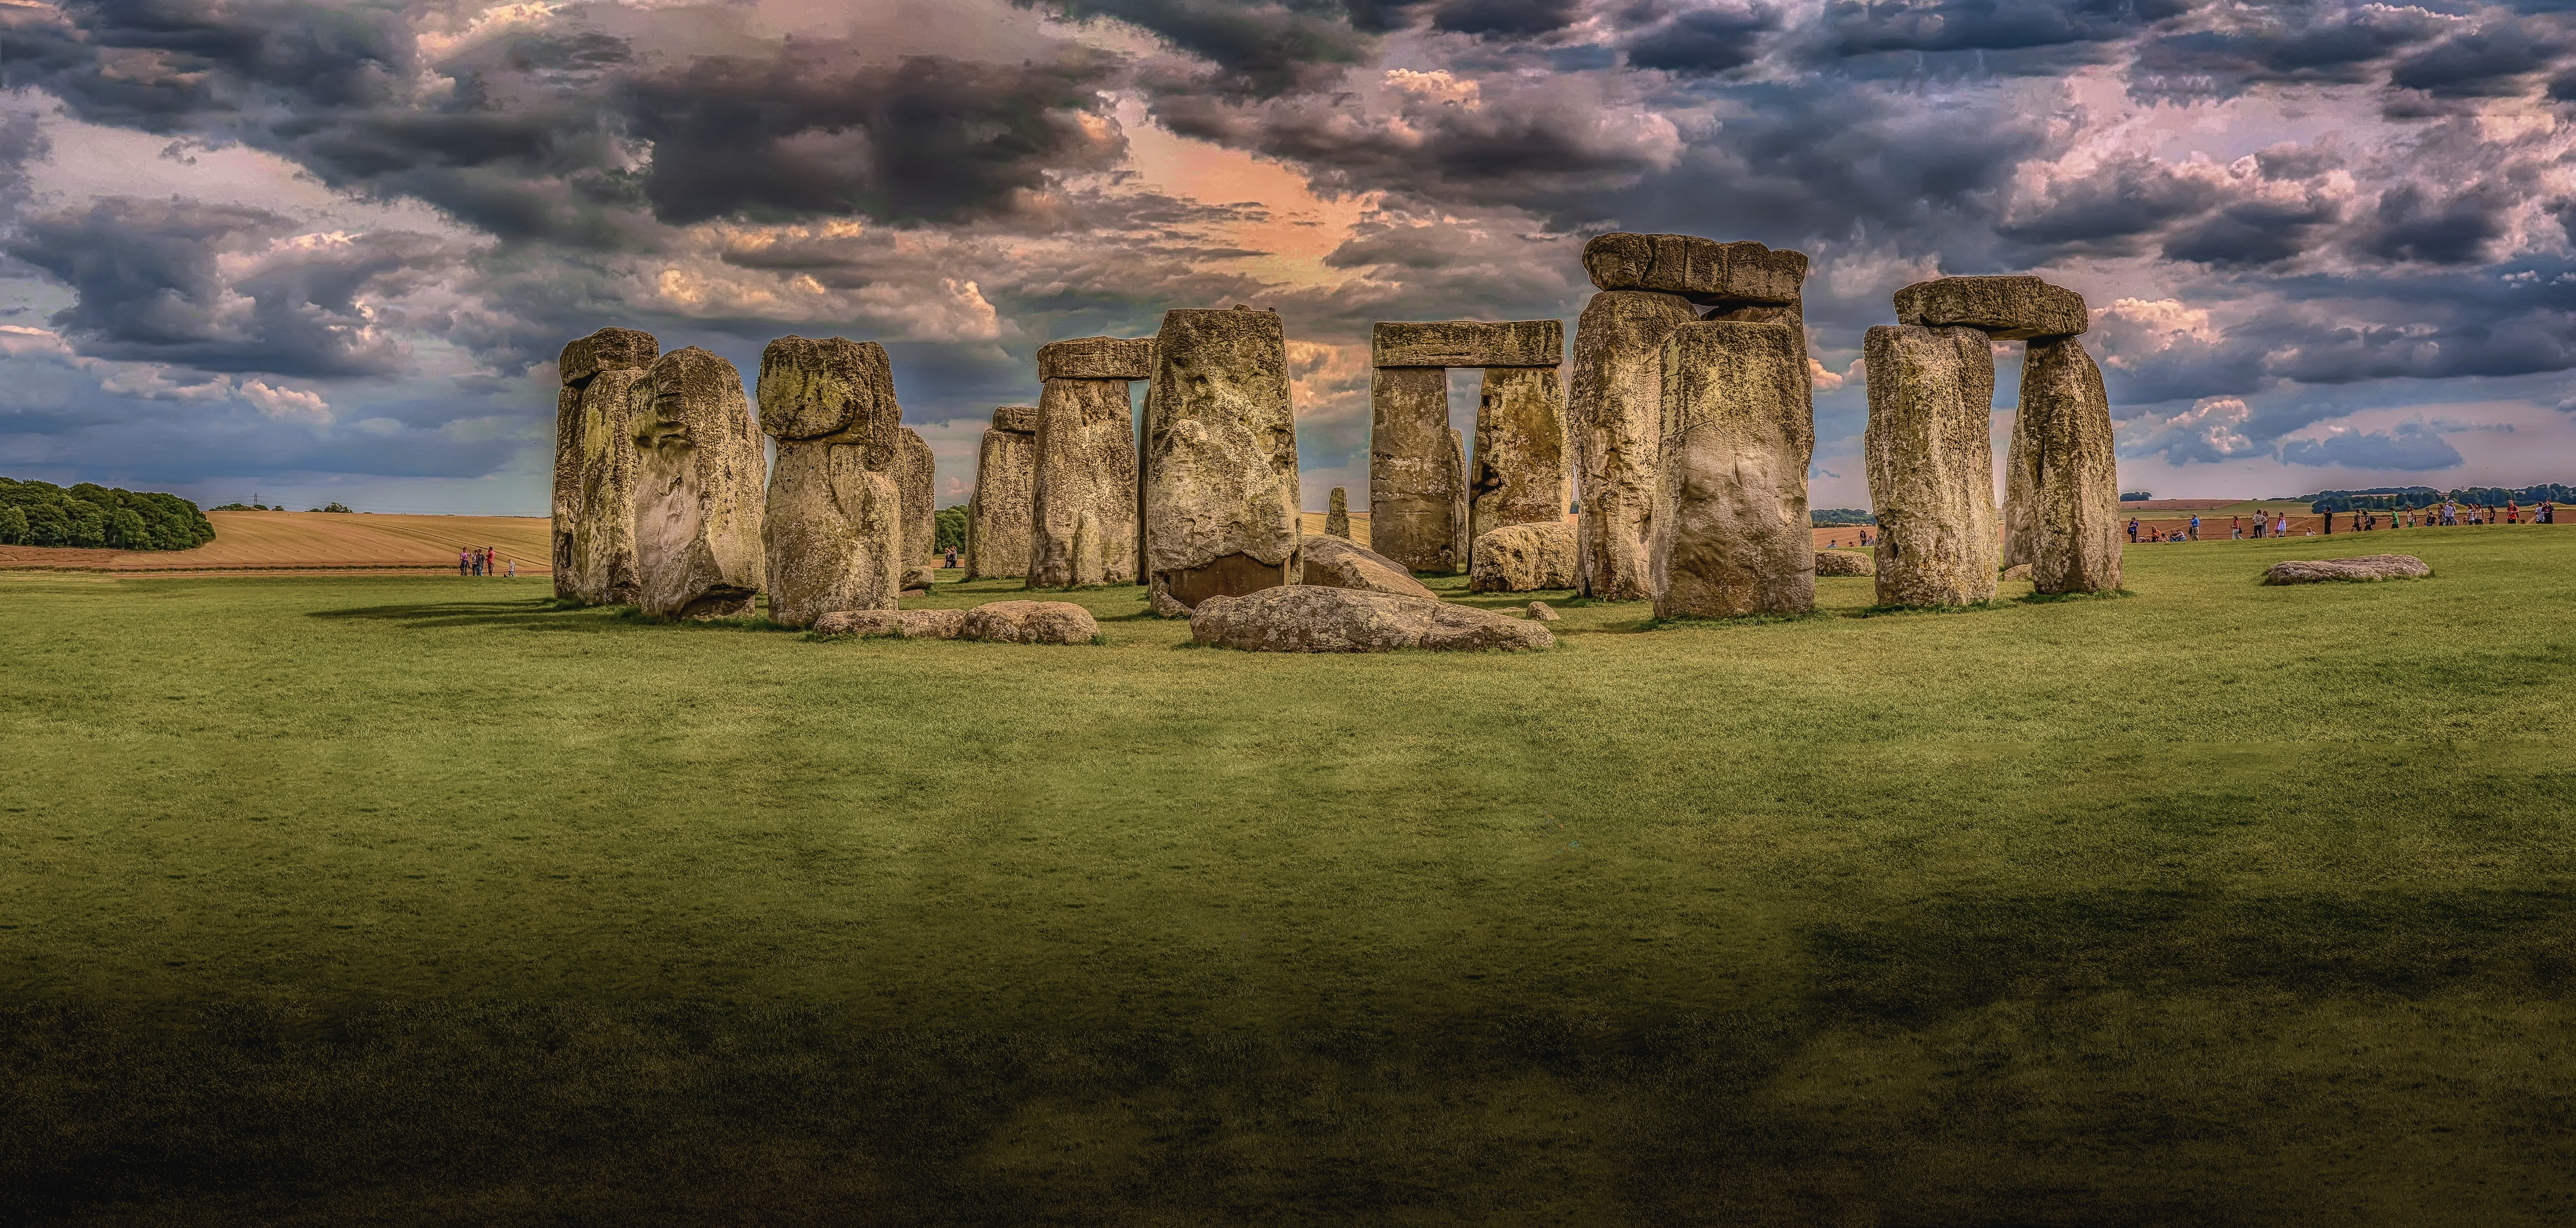 an introduction to the history and the origins of stonehenge • introduction • history and construction when was stonehenge built the origins of stonehenge as a prehistoric site go back to at least the 9th.